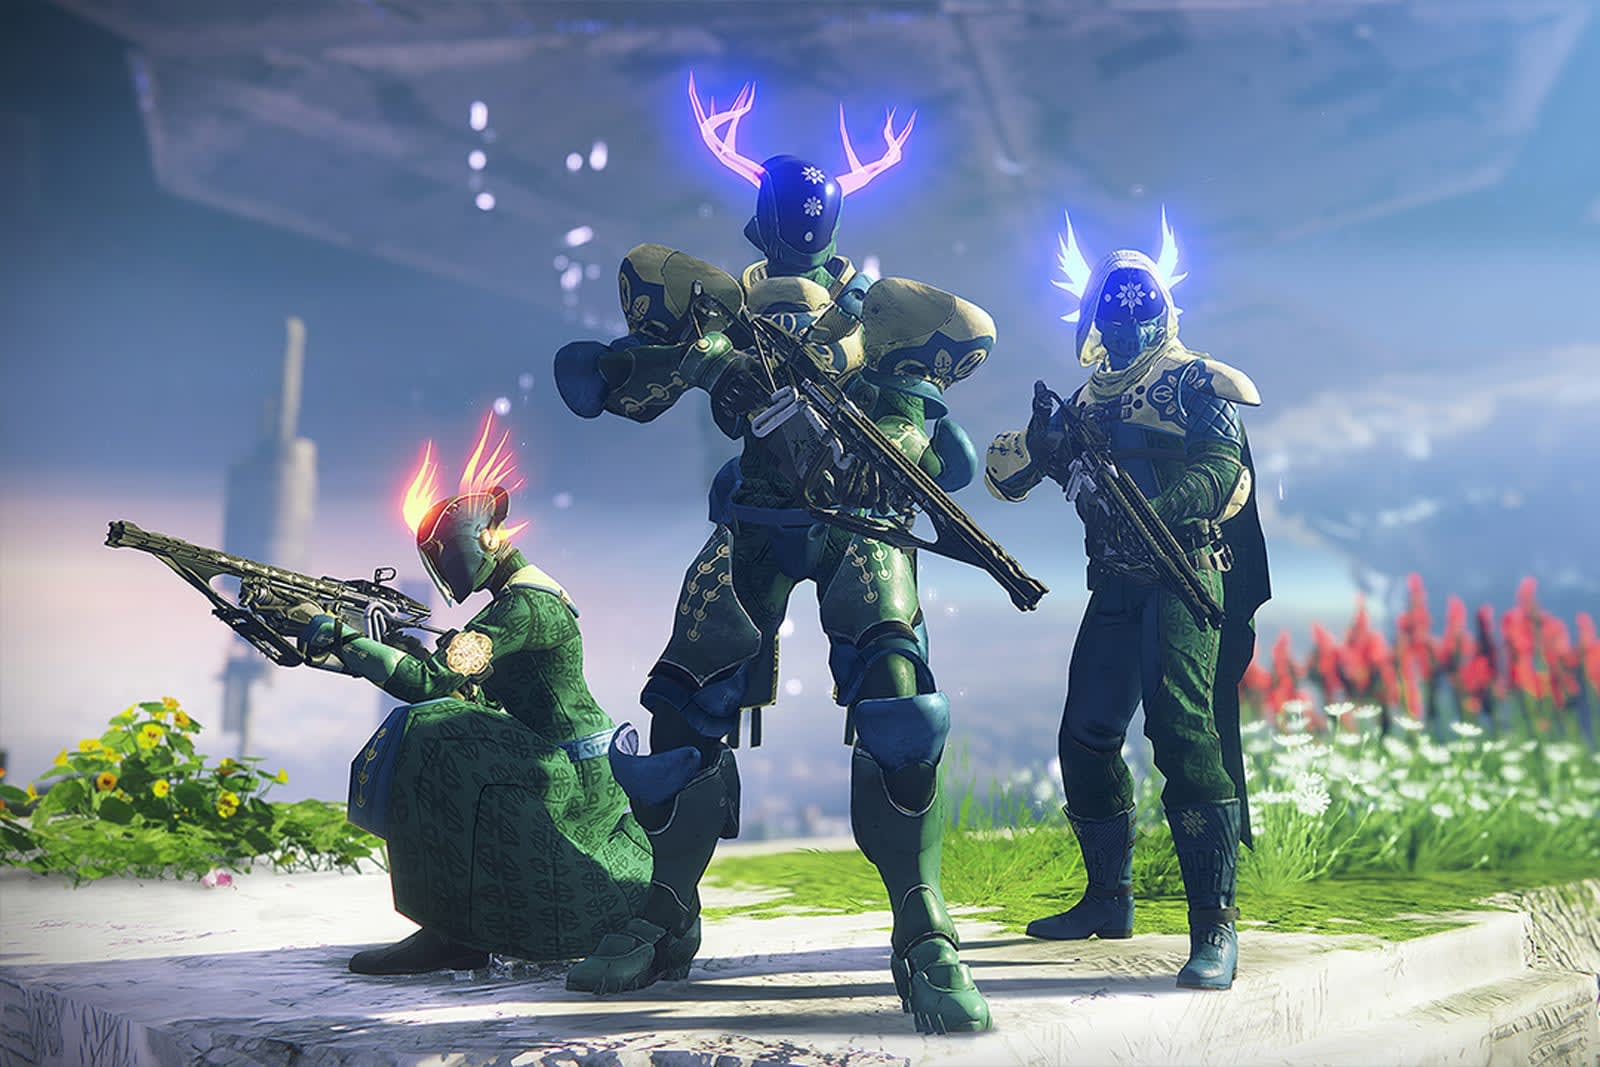 The first 'Destiny 2' spring event begins April 16th